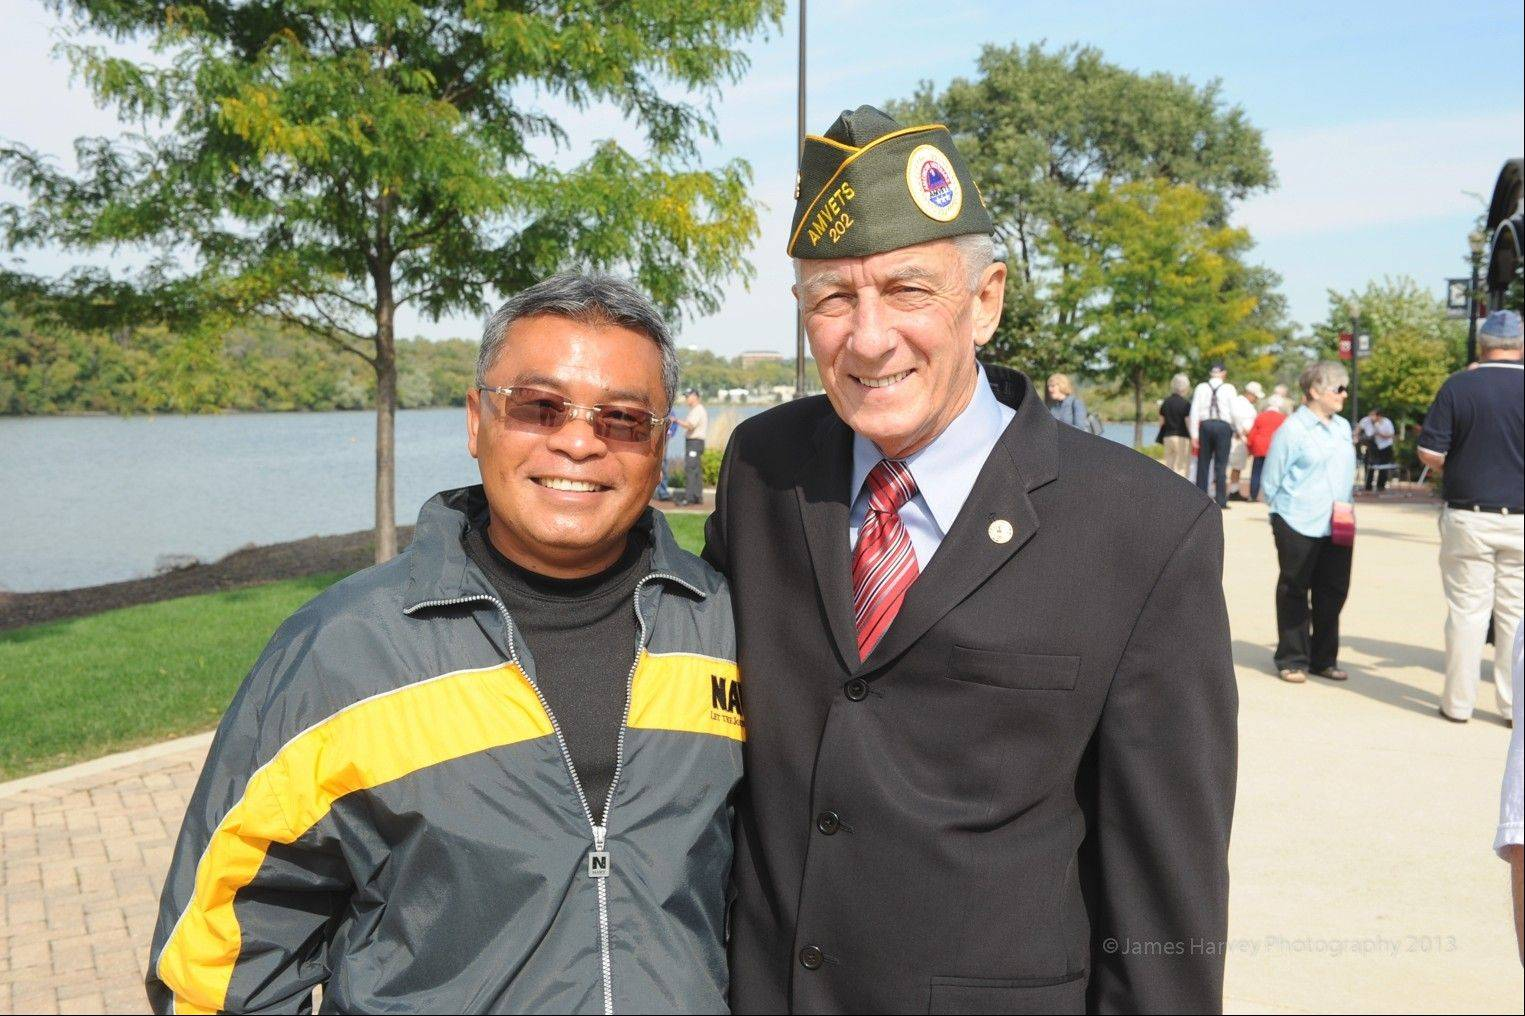 Chin Keomuongchanh, left, poses with state Rep. Keith Farnham at the Elgin Veterans Memorial Park. Keomuongchanh is working with Elgin and state officials to provide greater recognition for Lao veterans who assisted the United States during the Vietnam War.